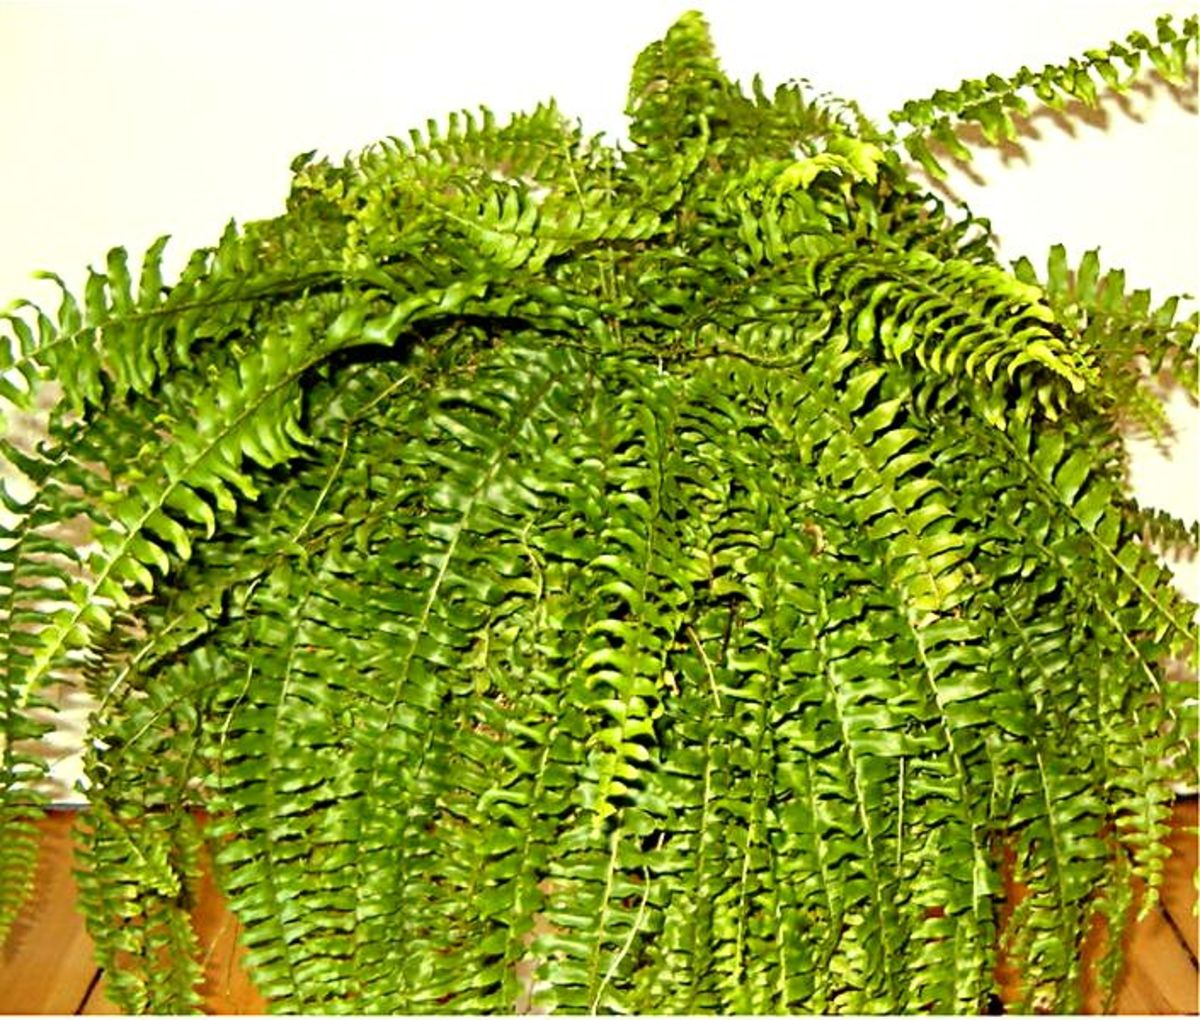 The Boston Fern is one of the most popular house plants.